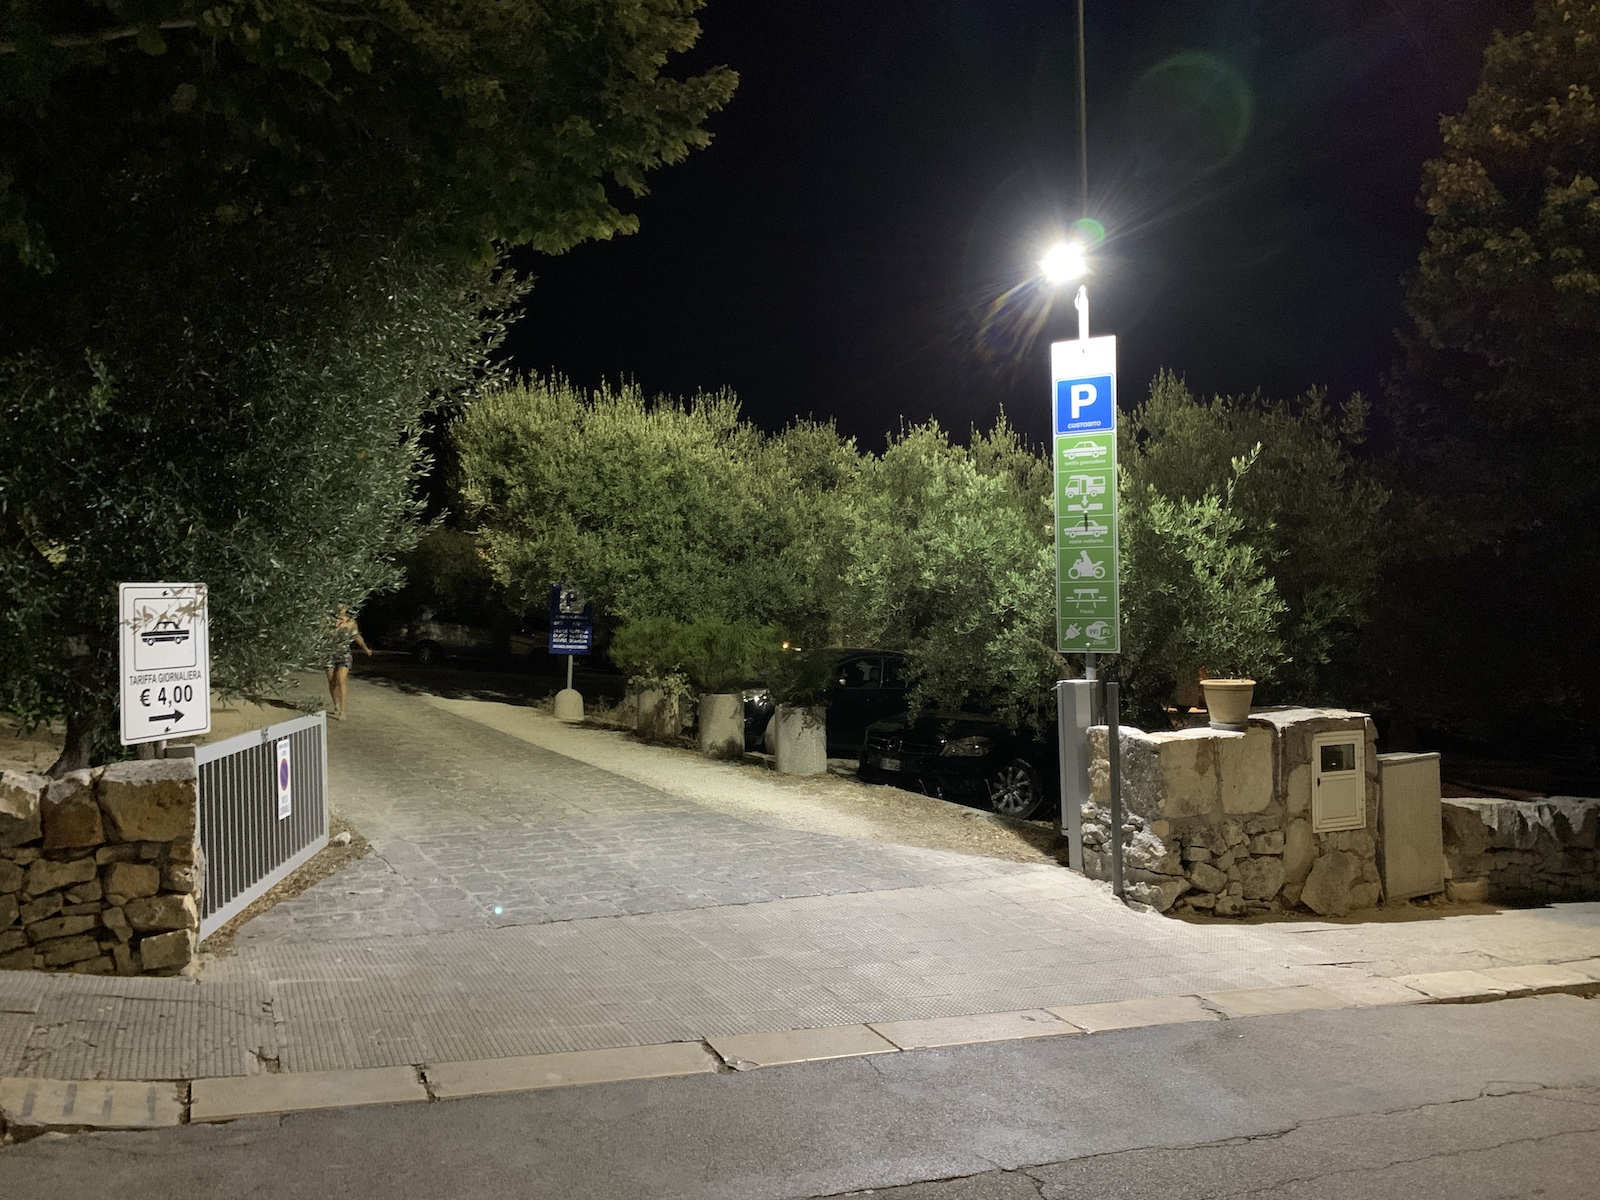 You are currently viewing Stellplatz in Alberobello